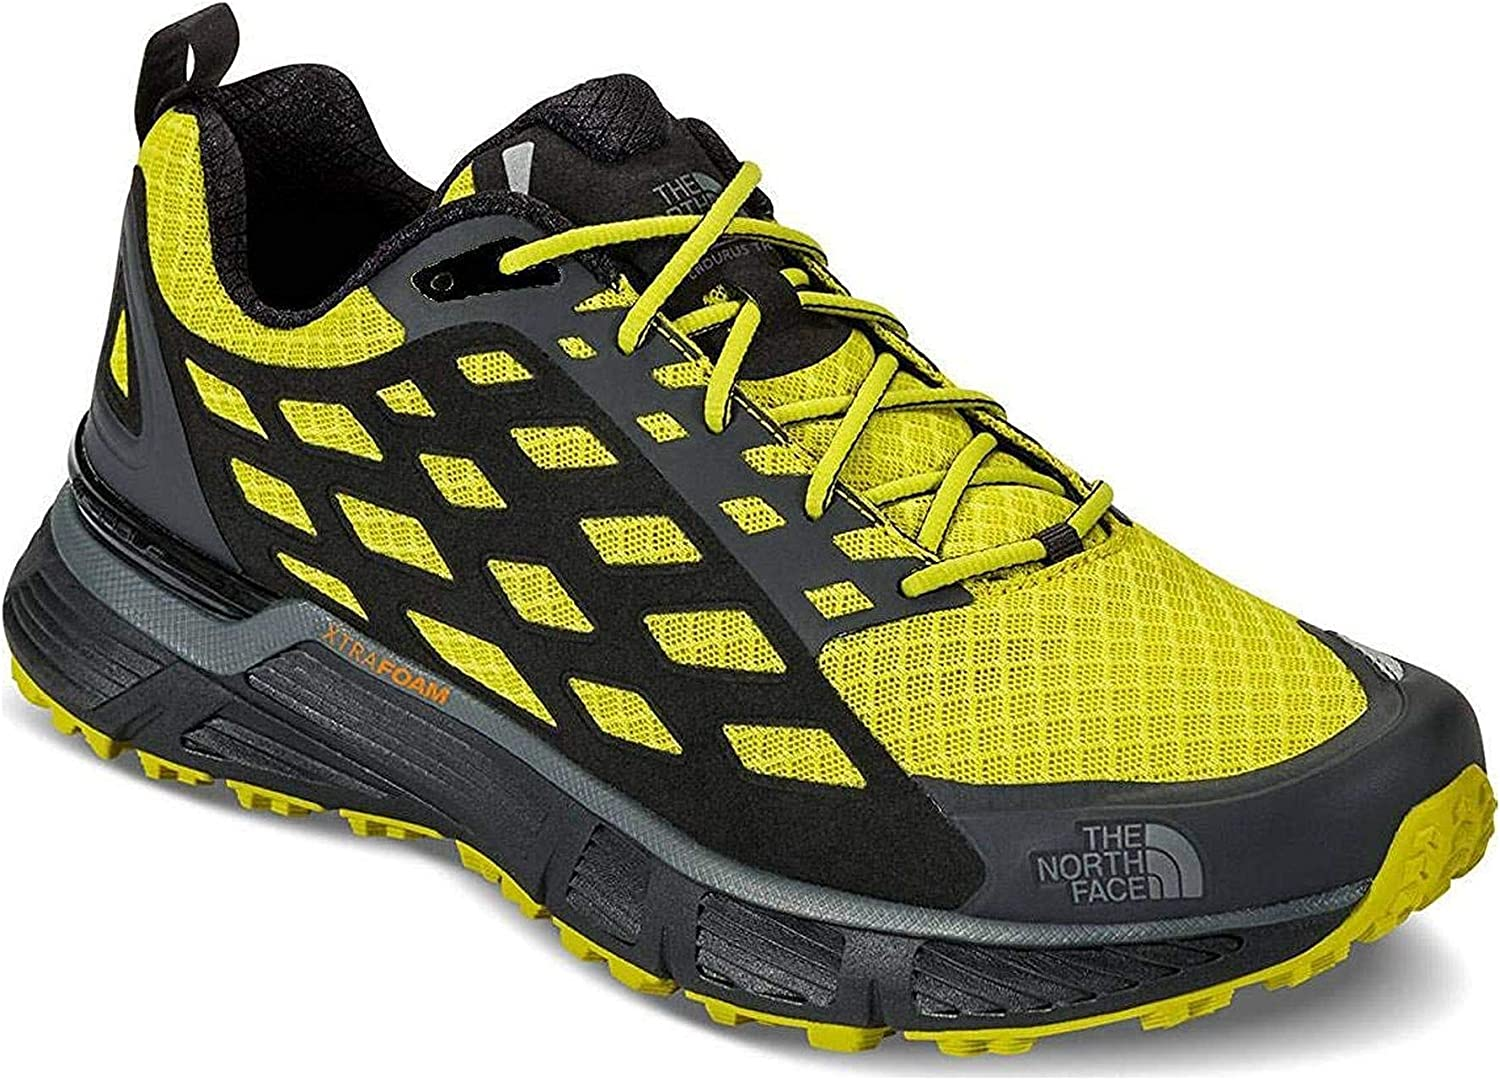 THE NORTH FACE M Endurus TR Trail Running shoes for Men Yellow